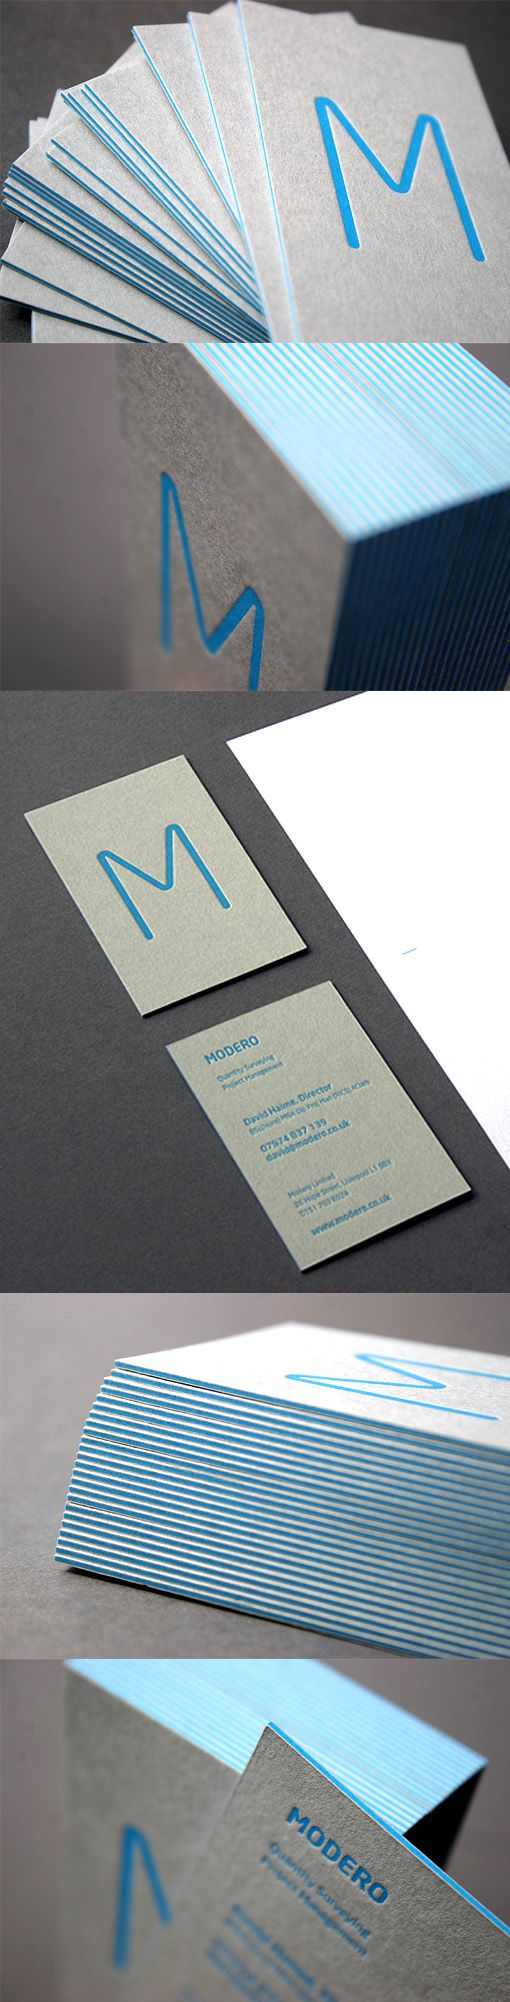 Minimalist Business Card Letterpress Printed On Recycled Card Stock ...